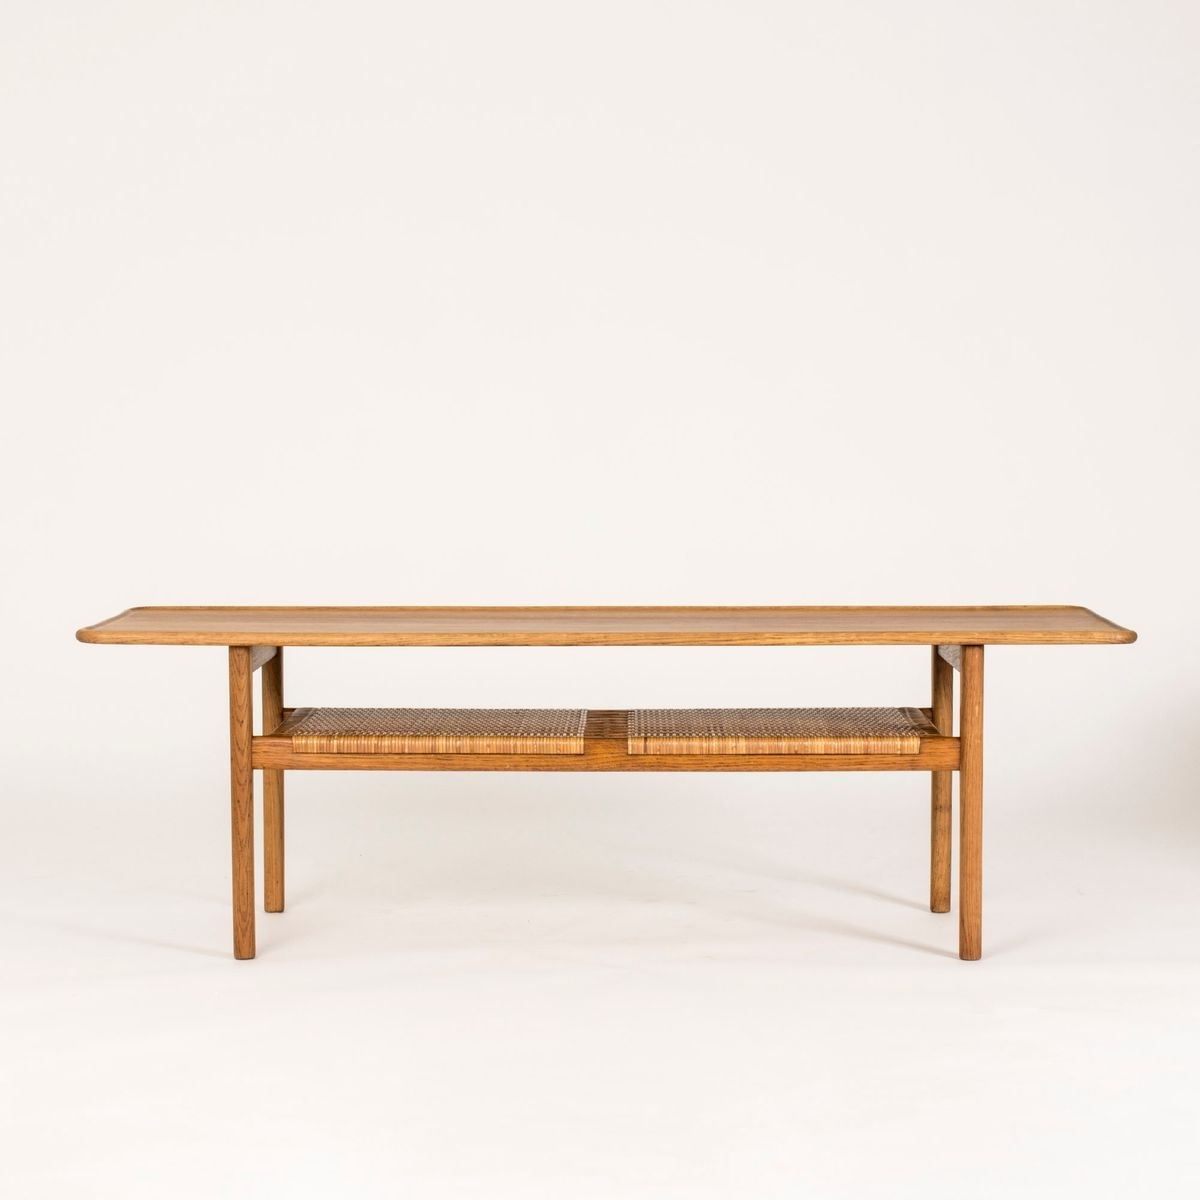 Preferred Smoked Oak Coffee Tables Intended For Mid Century Smoked Oak & Rattan Coffee Tablehans J (View 14 of 20)